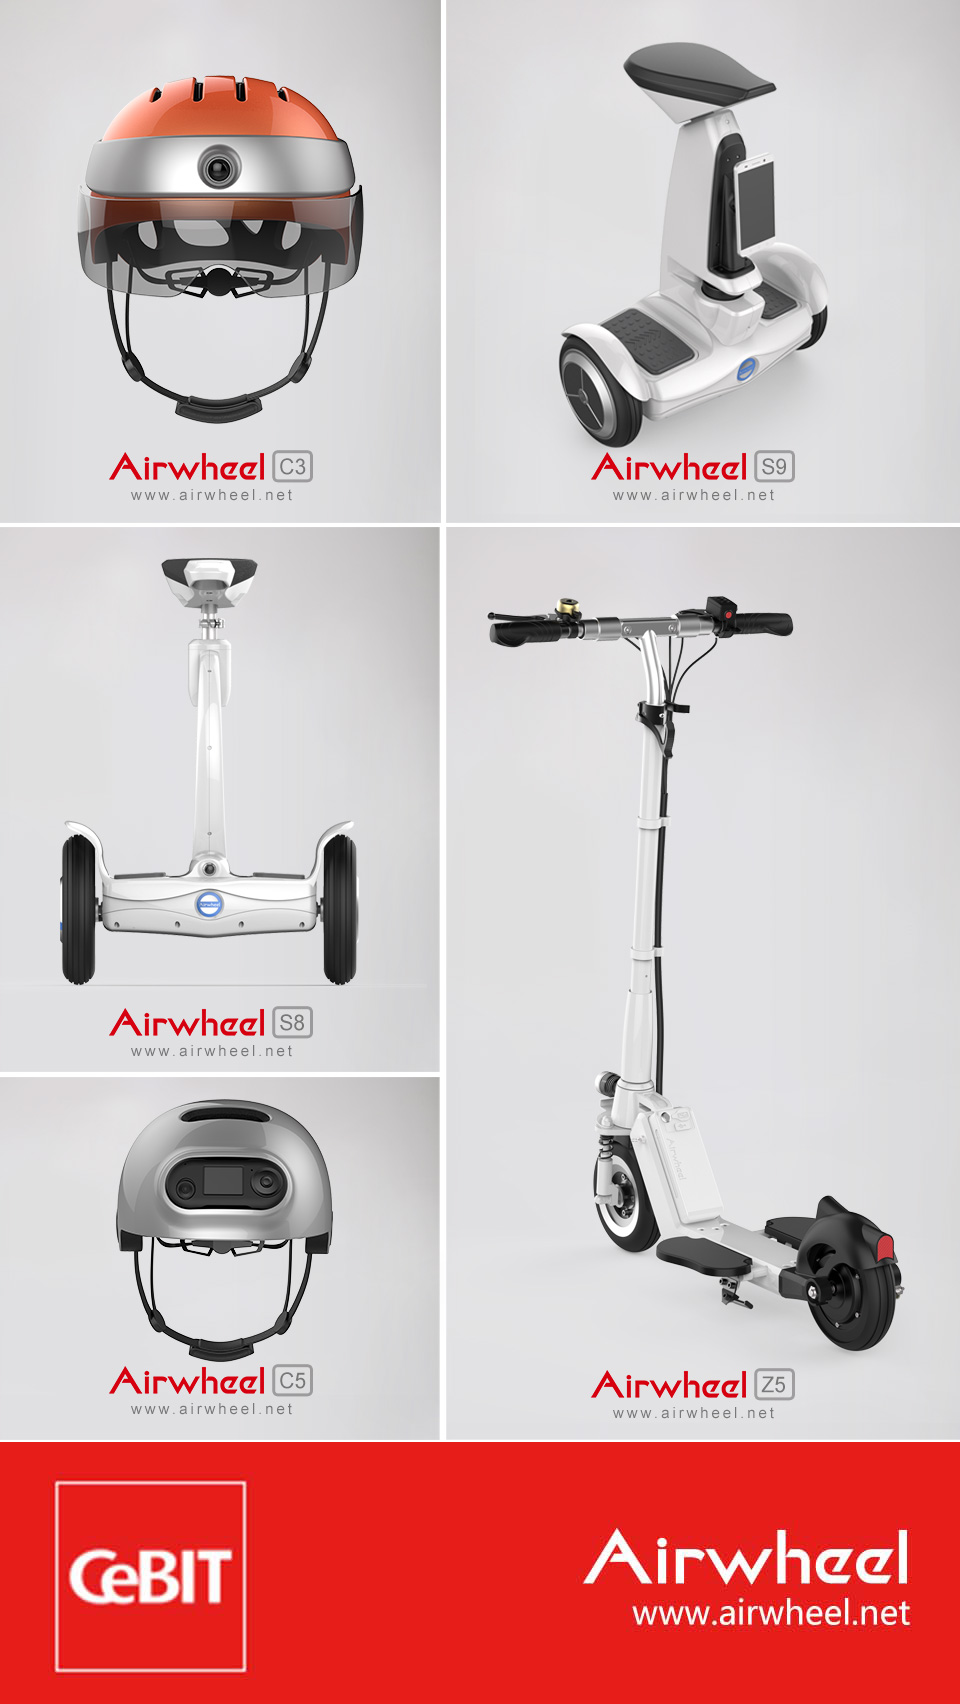 razor electric scooter Airwheel Z5